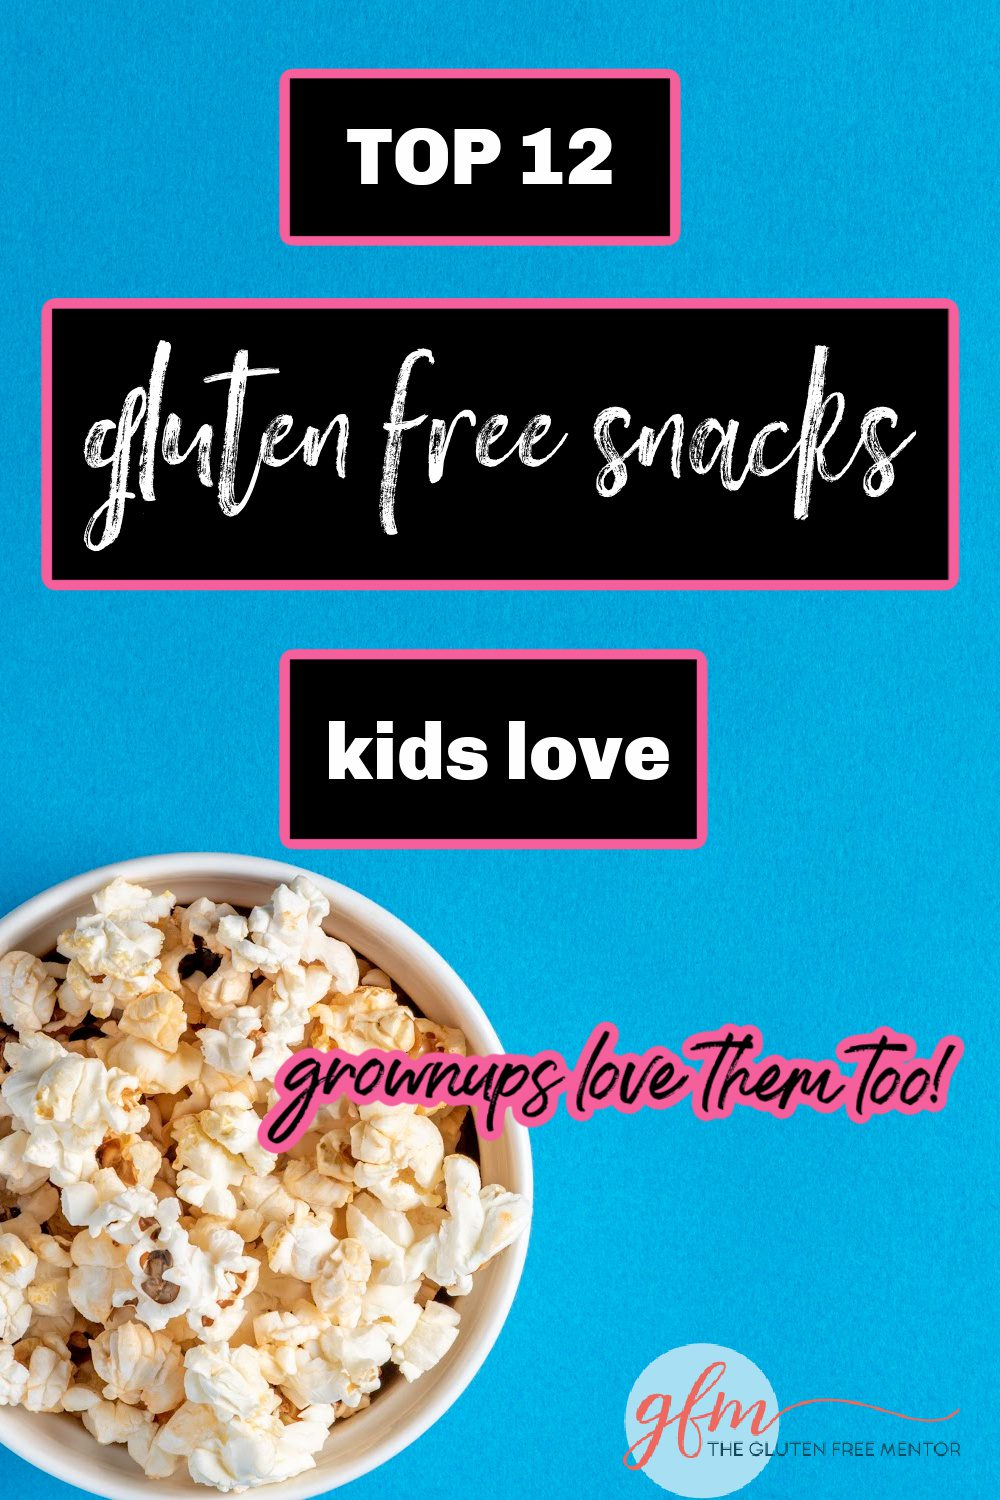 Pin Top 12 Gluten Free Snacks Kids Love to your Pinterest Account